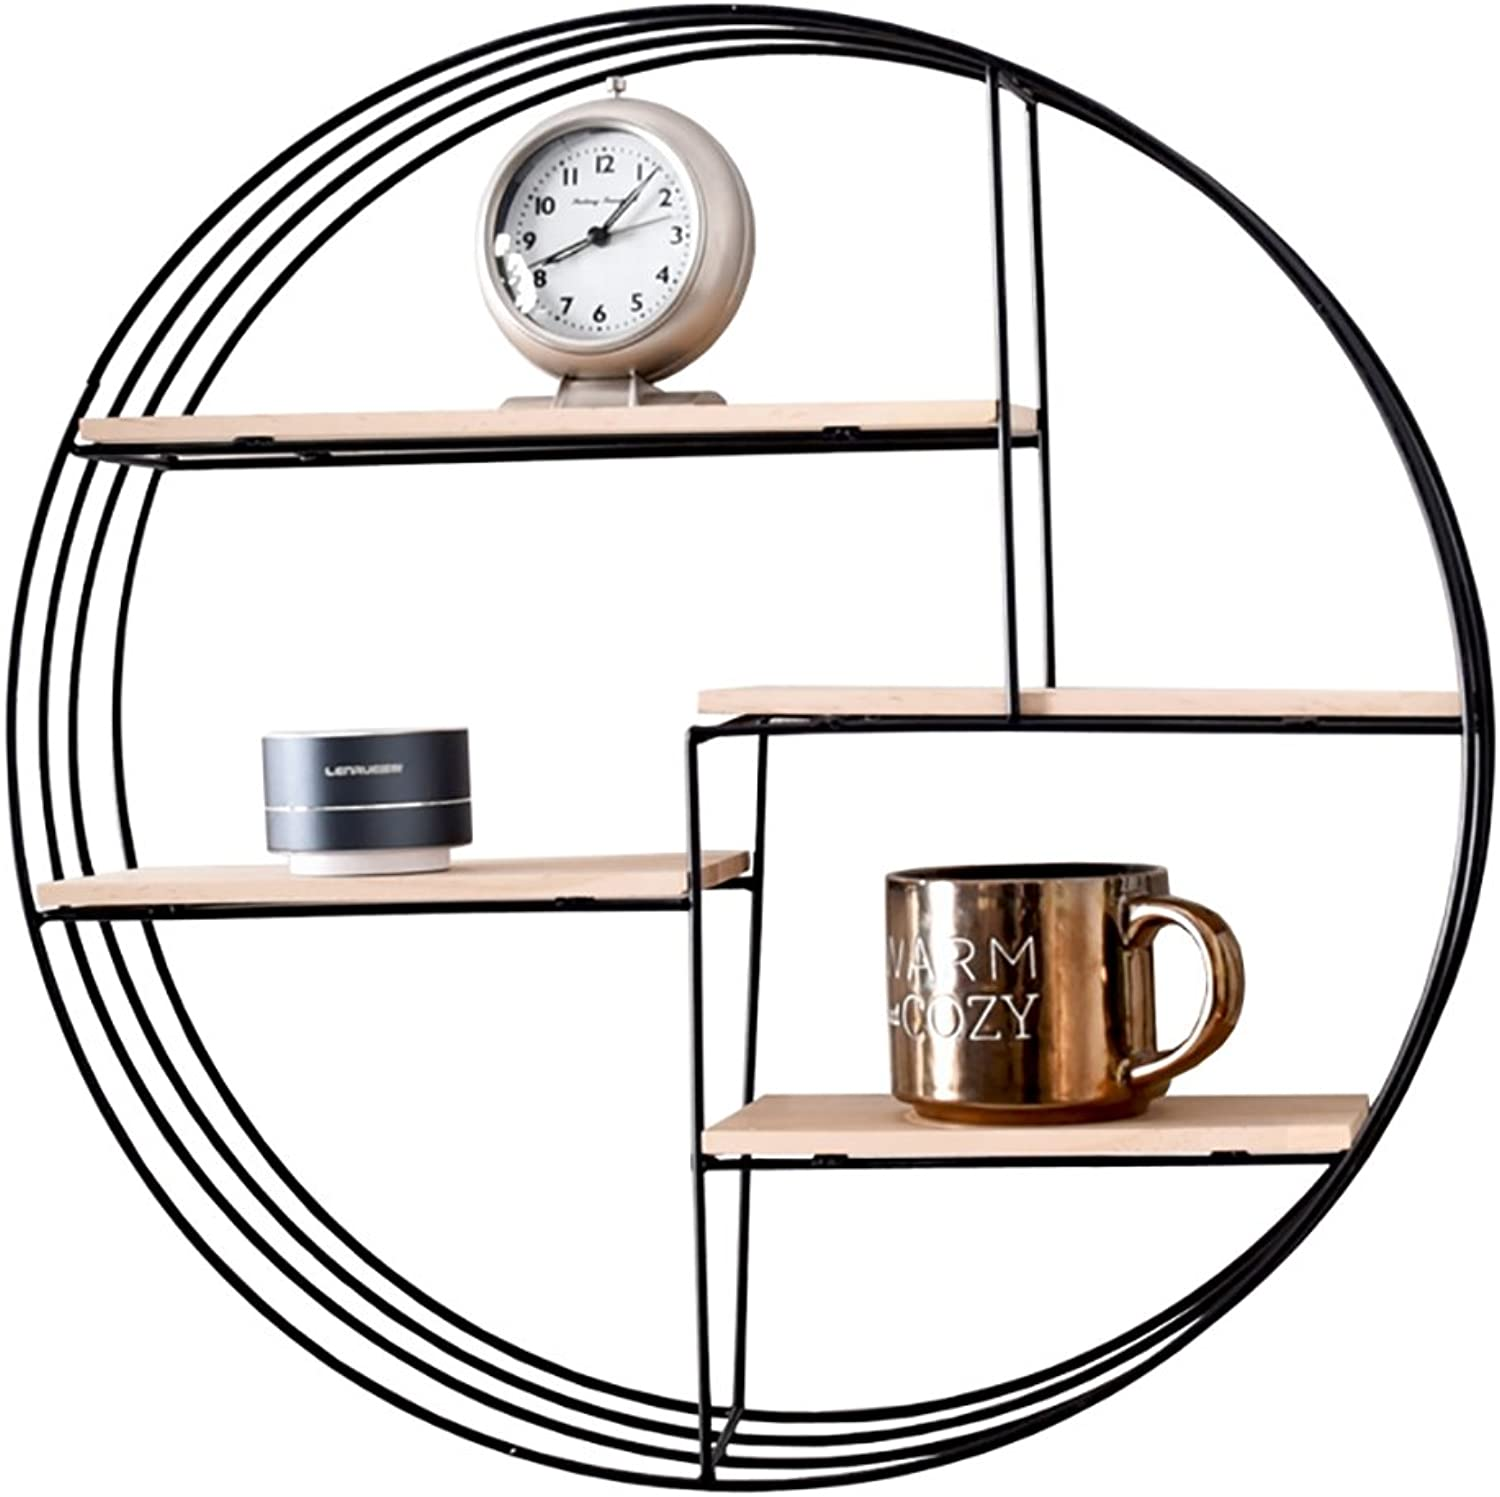 Decorative Accessories Wall-Mounted Wall Frame Wrought Iron Circular partition Wall Shelf Wall Wall Decorative Shelf Creative Small Shelf 50  10  50cm Floating Shelves